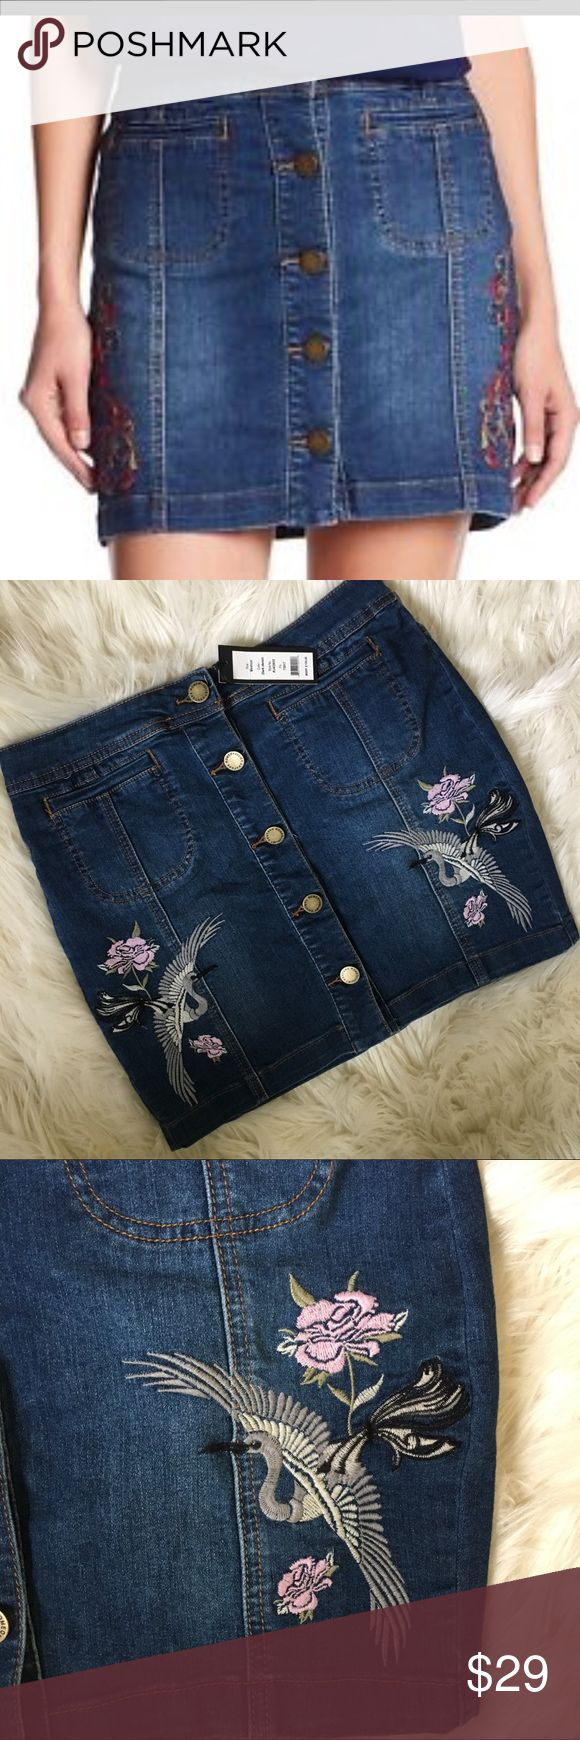 """NWT jean skirt NWT Women's jean Button skirt size medium with beautiful bird and flower embroidered on the side. Top to bottom is about 16"""". Waist is 15"""". Romeo & Juliet Couture Skirts Mini"""